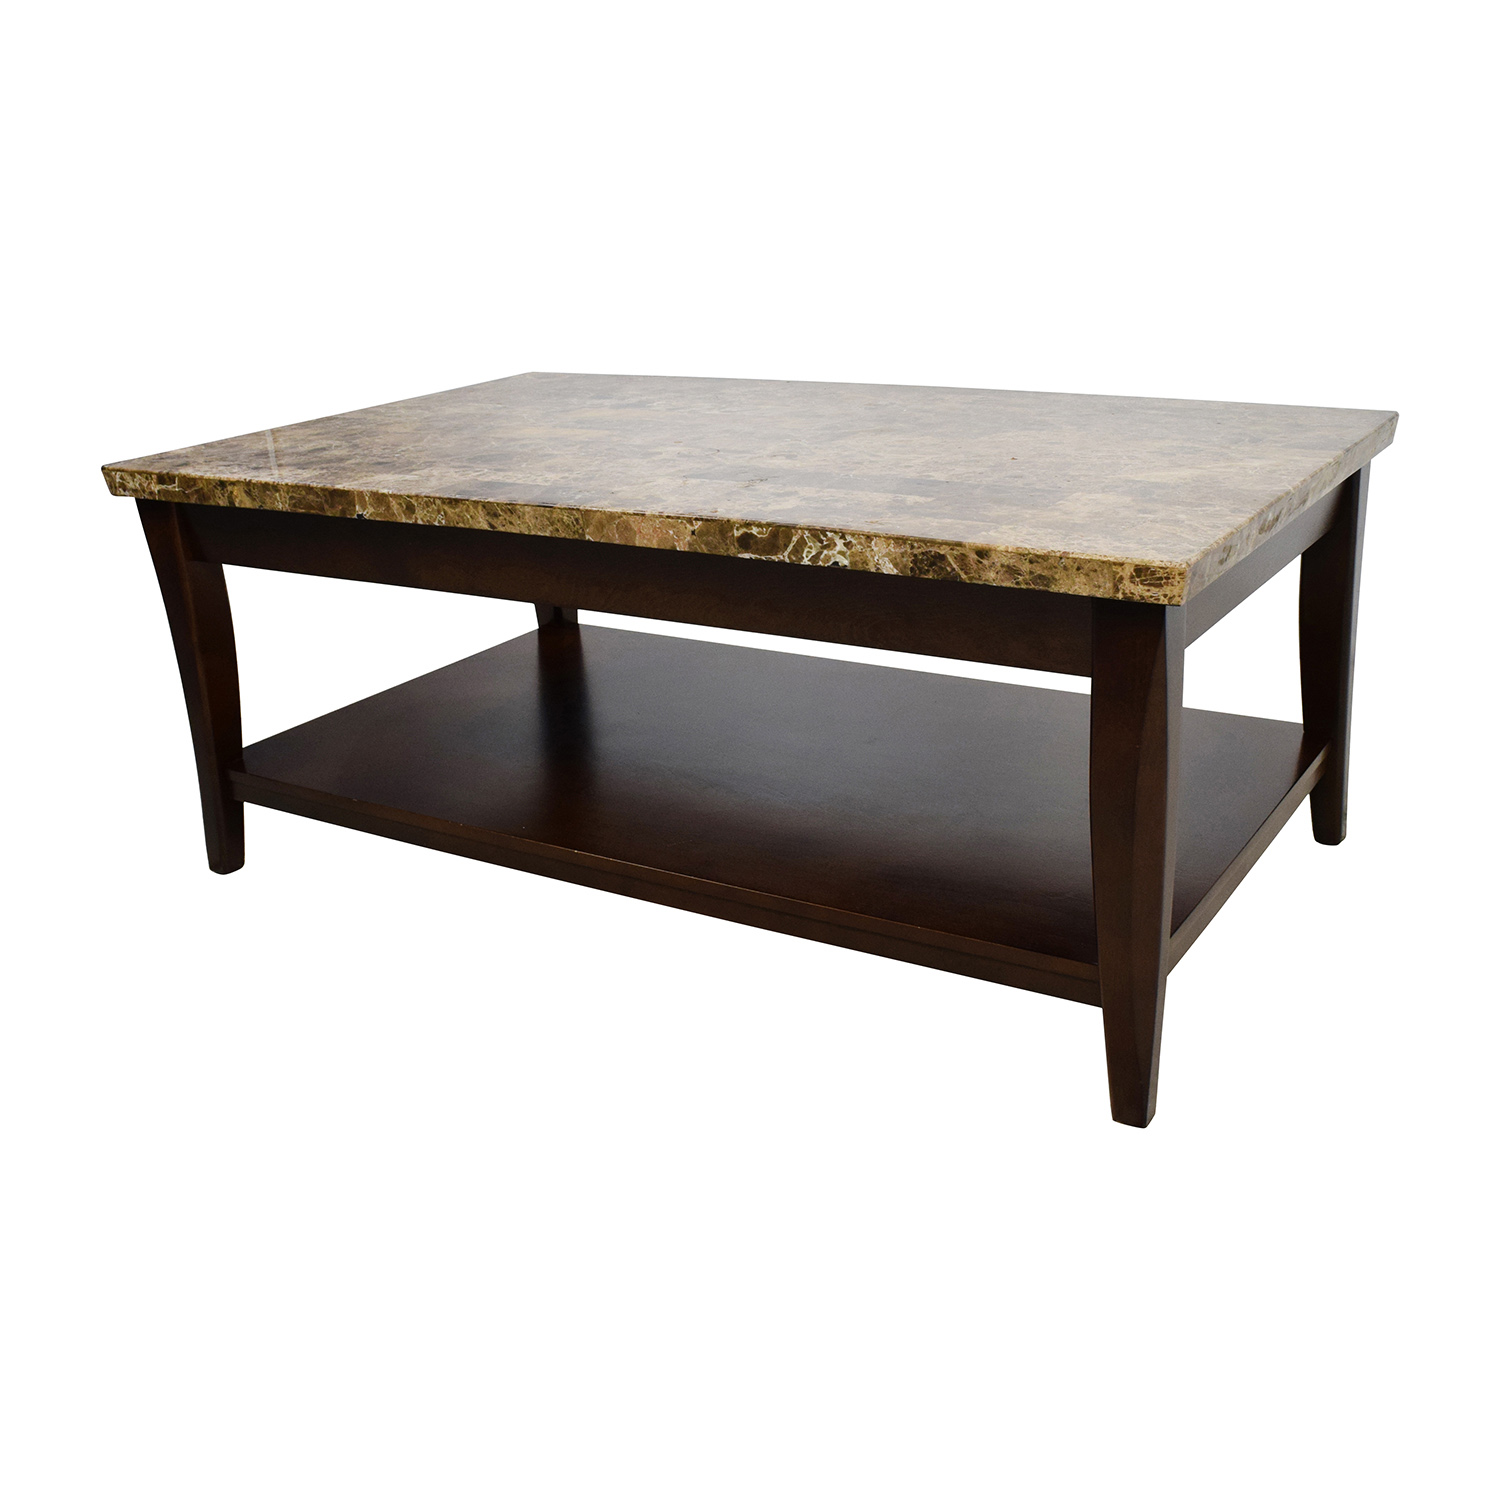 Top 28 And Coffee Table Furniture Round Marble Top End Table Decor Ideasdecor Wellesley